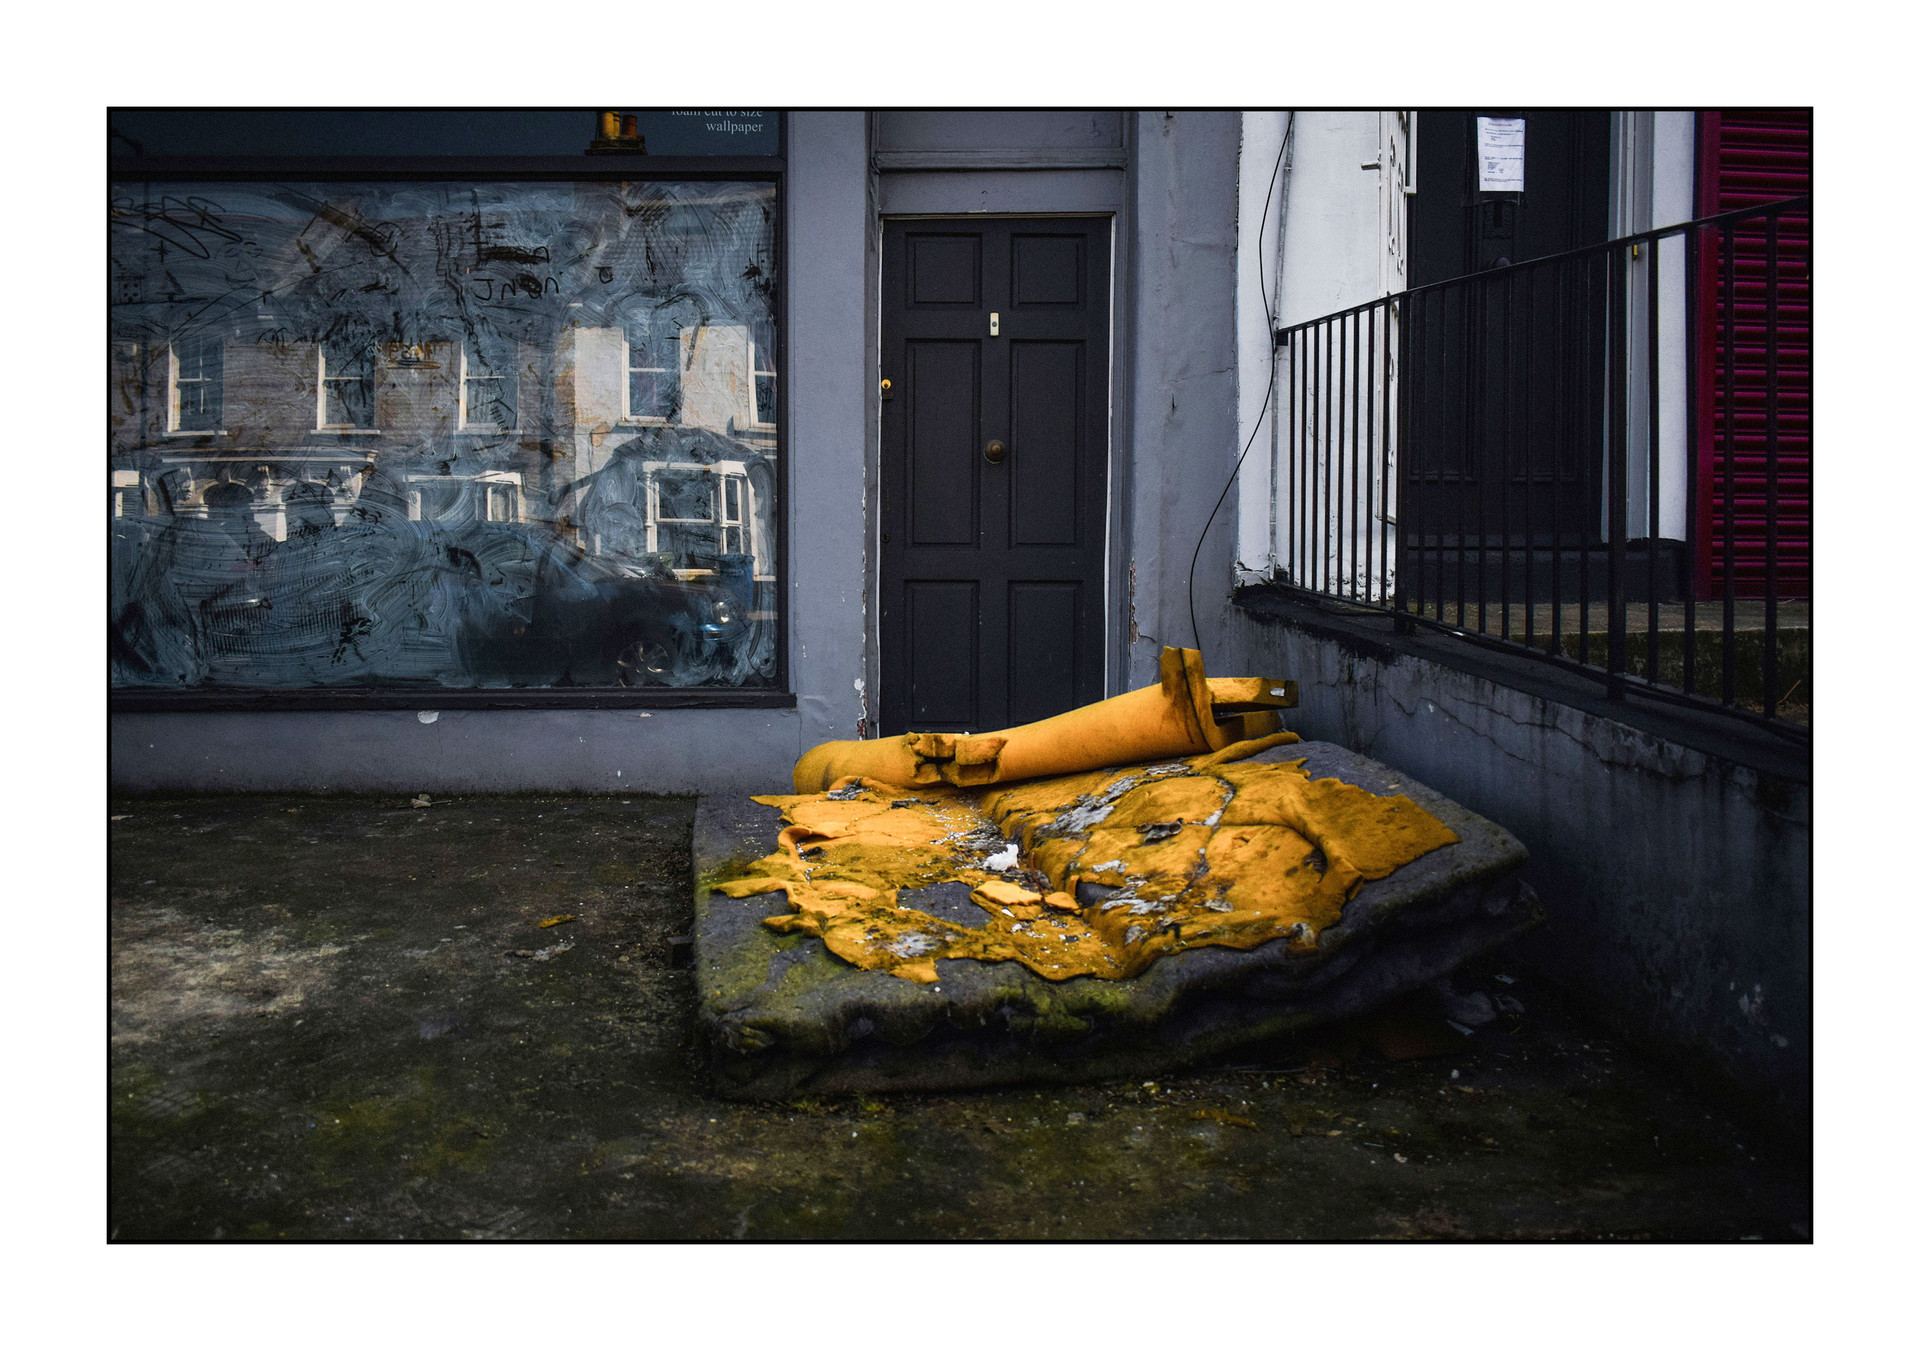 Discarded mattress - East Dulwich, 2019